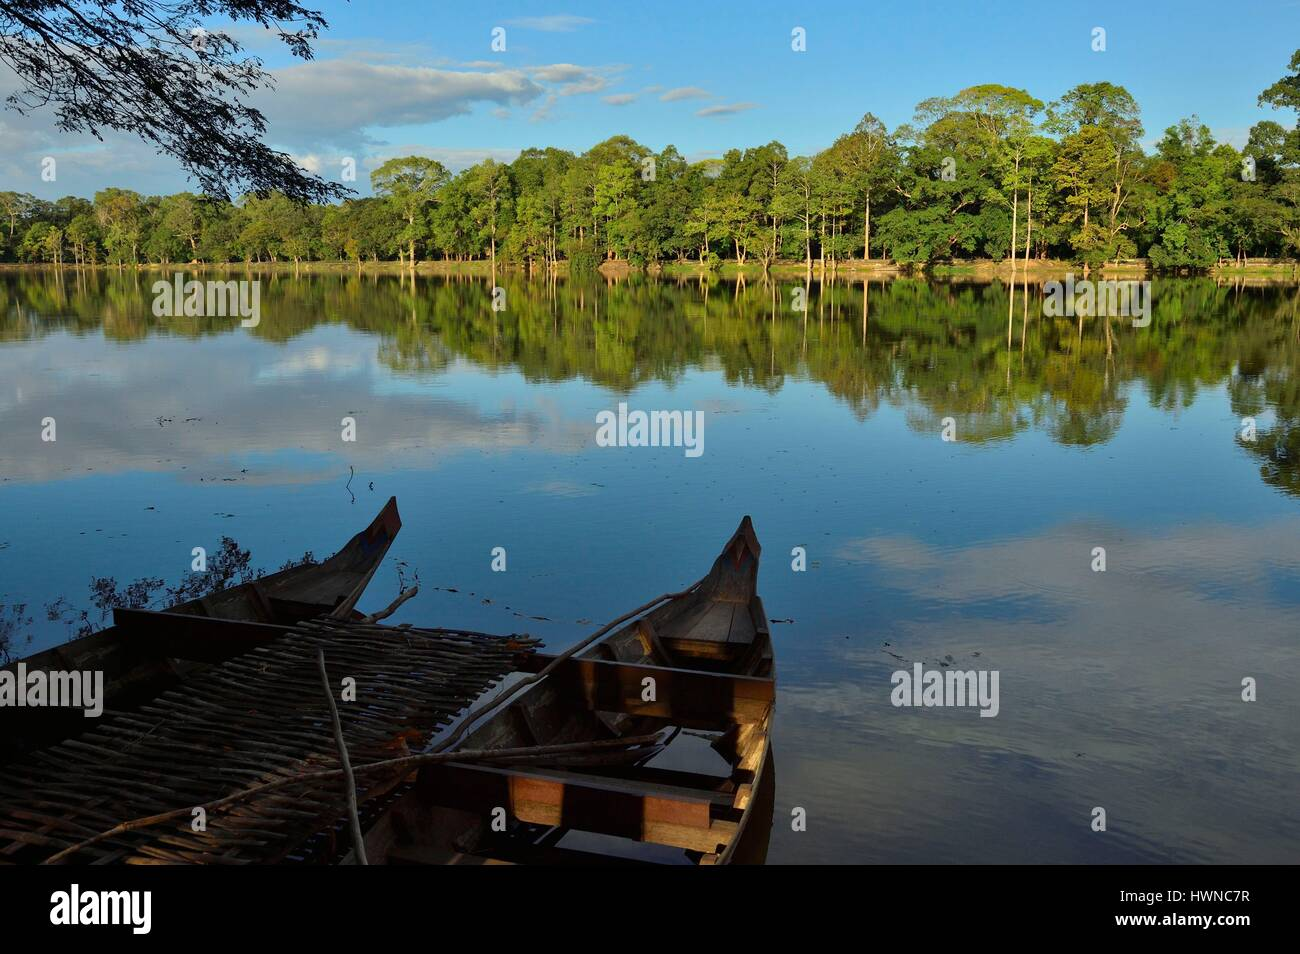 Cambodia, Siem Reap Province, Angkor temple complex, site listed as World Heritage by UNESCO, Angkor Wat - Stock Image